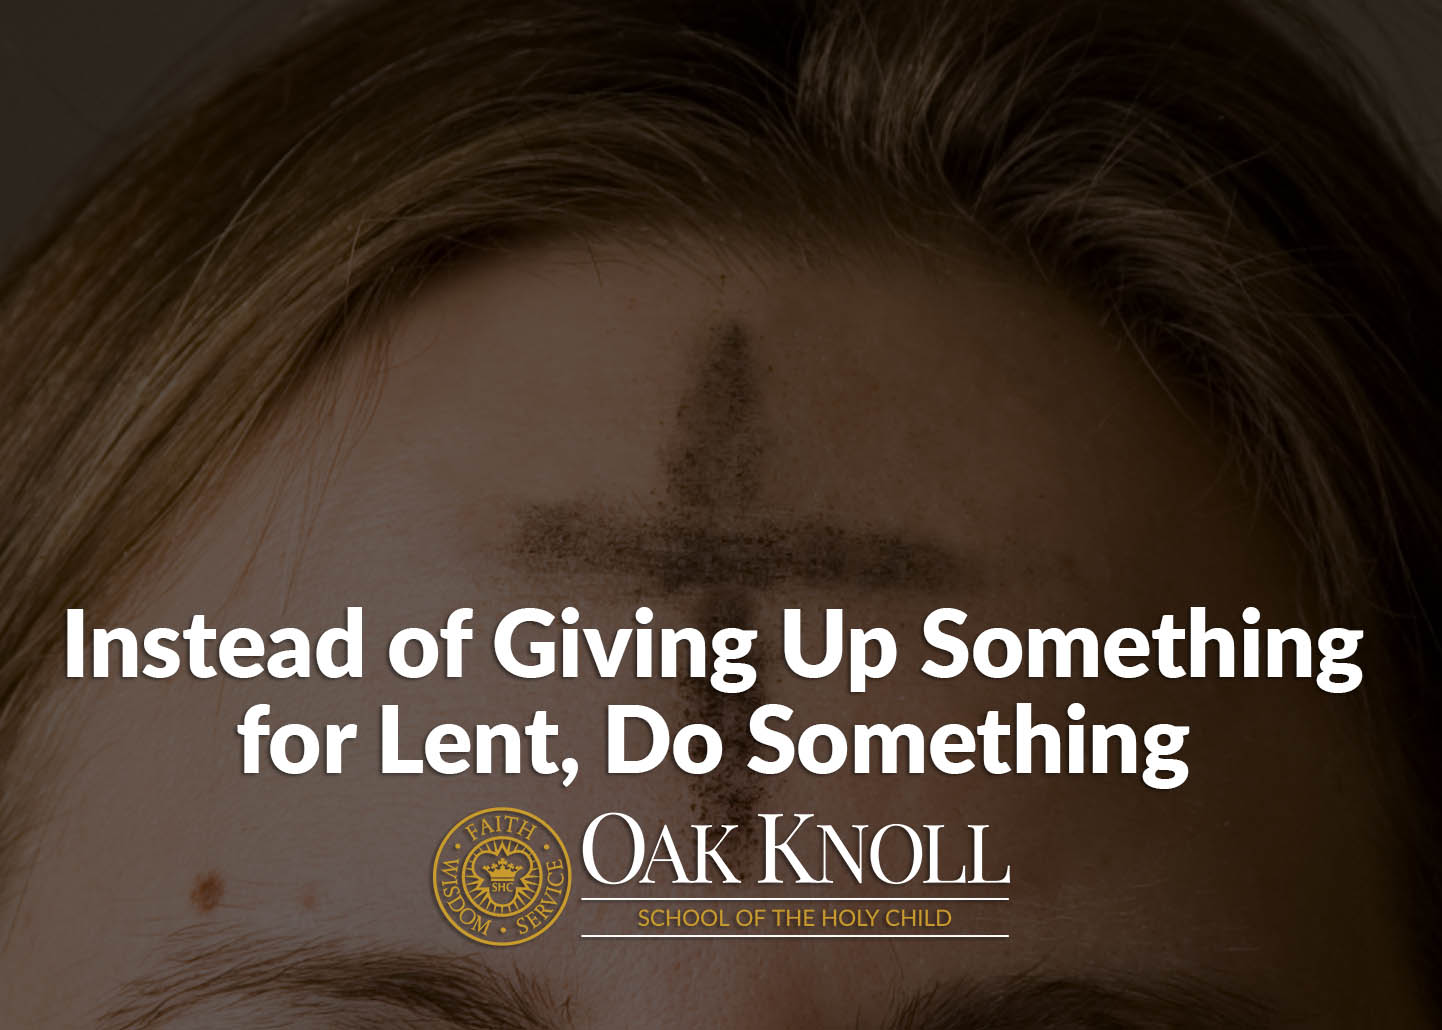 Instead of Giving Up Something for Lent, Do Something